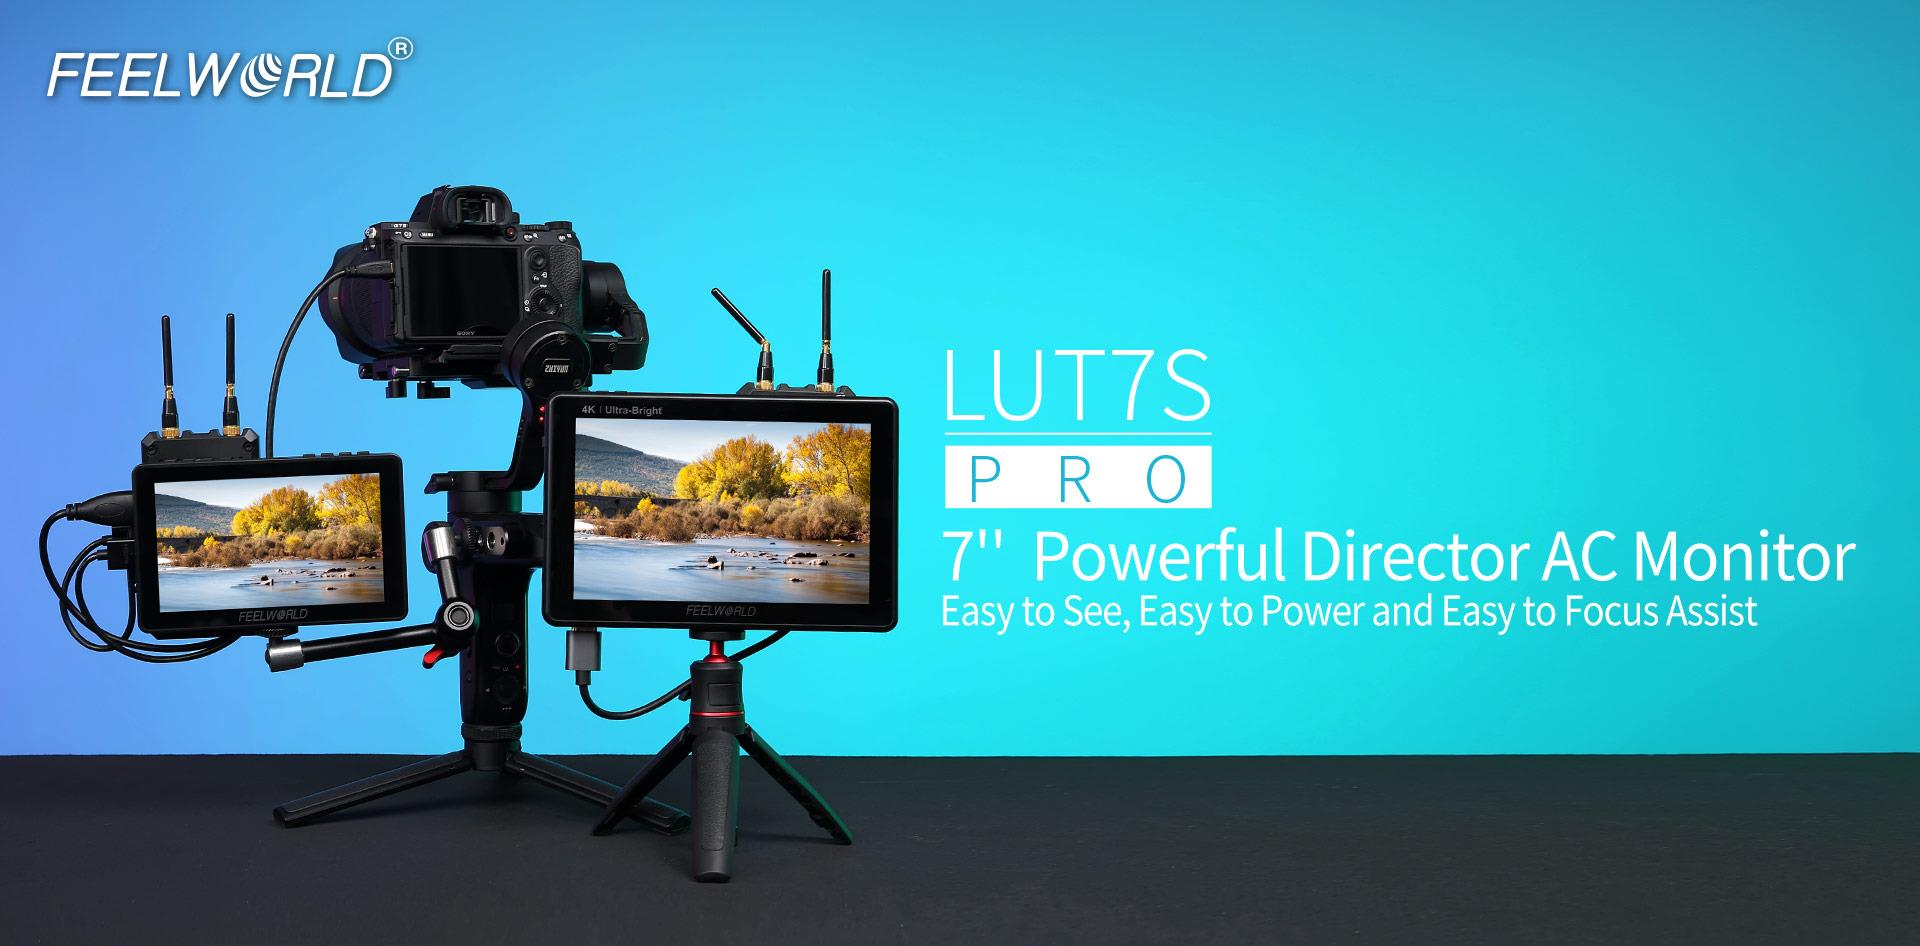 powerful director monitor